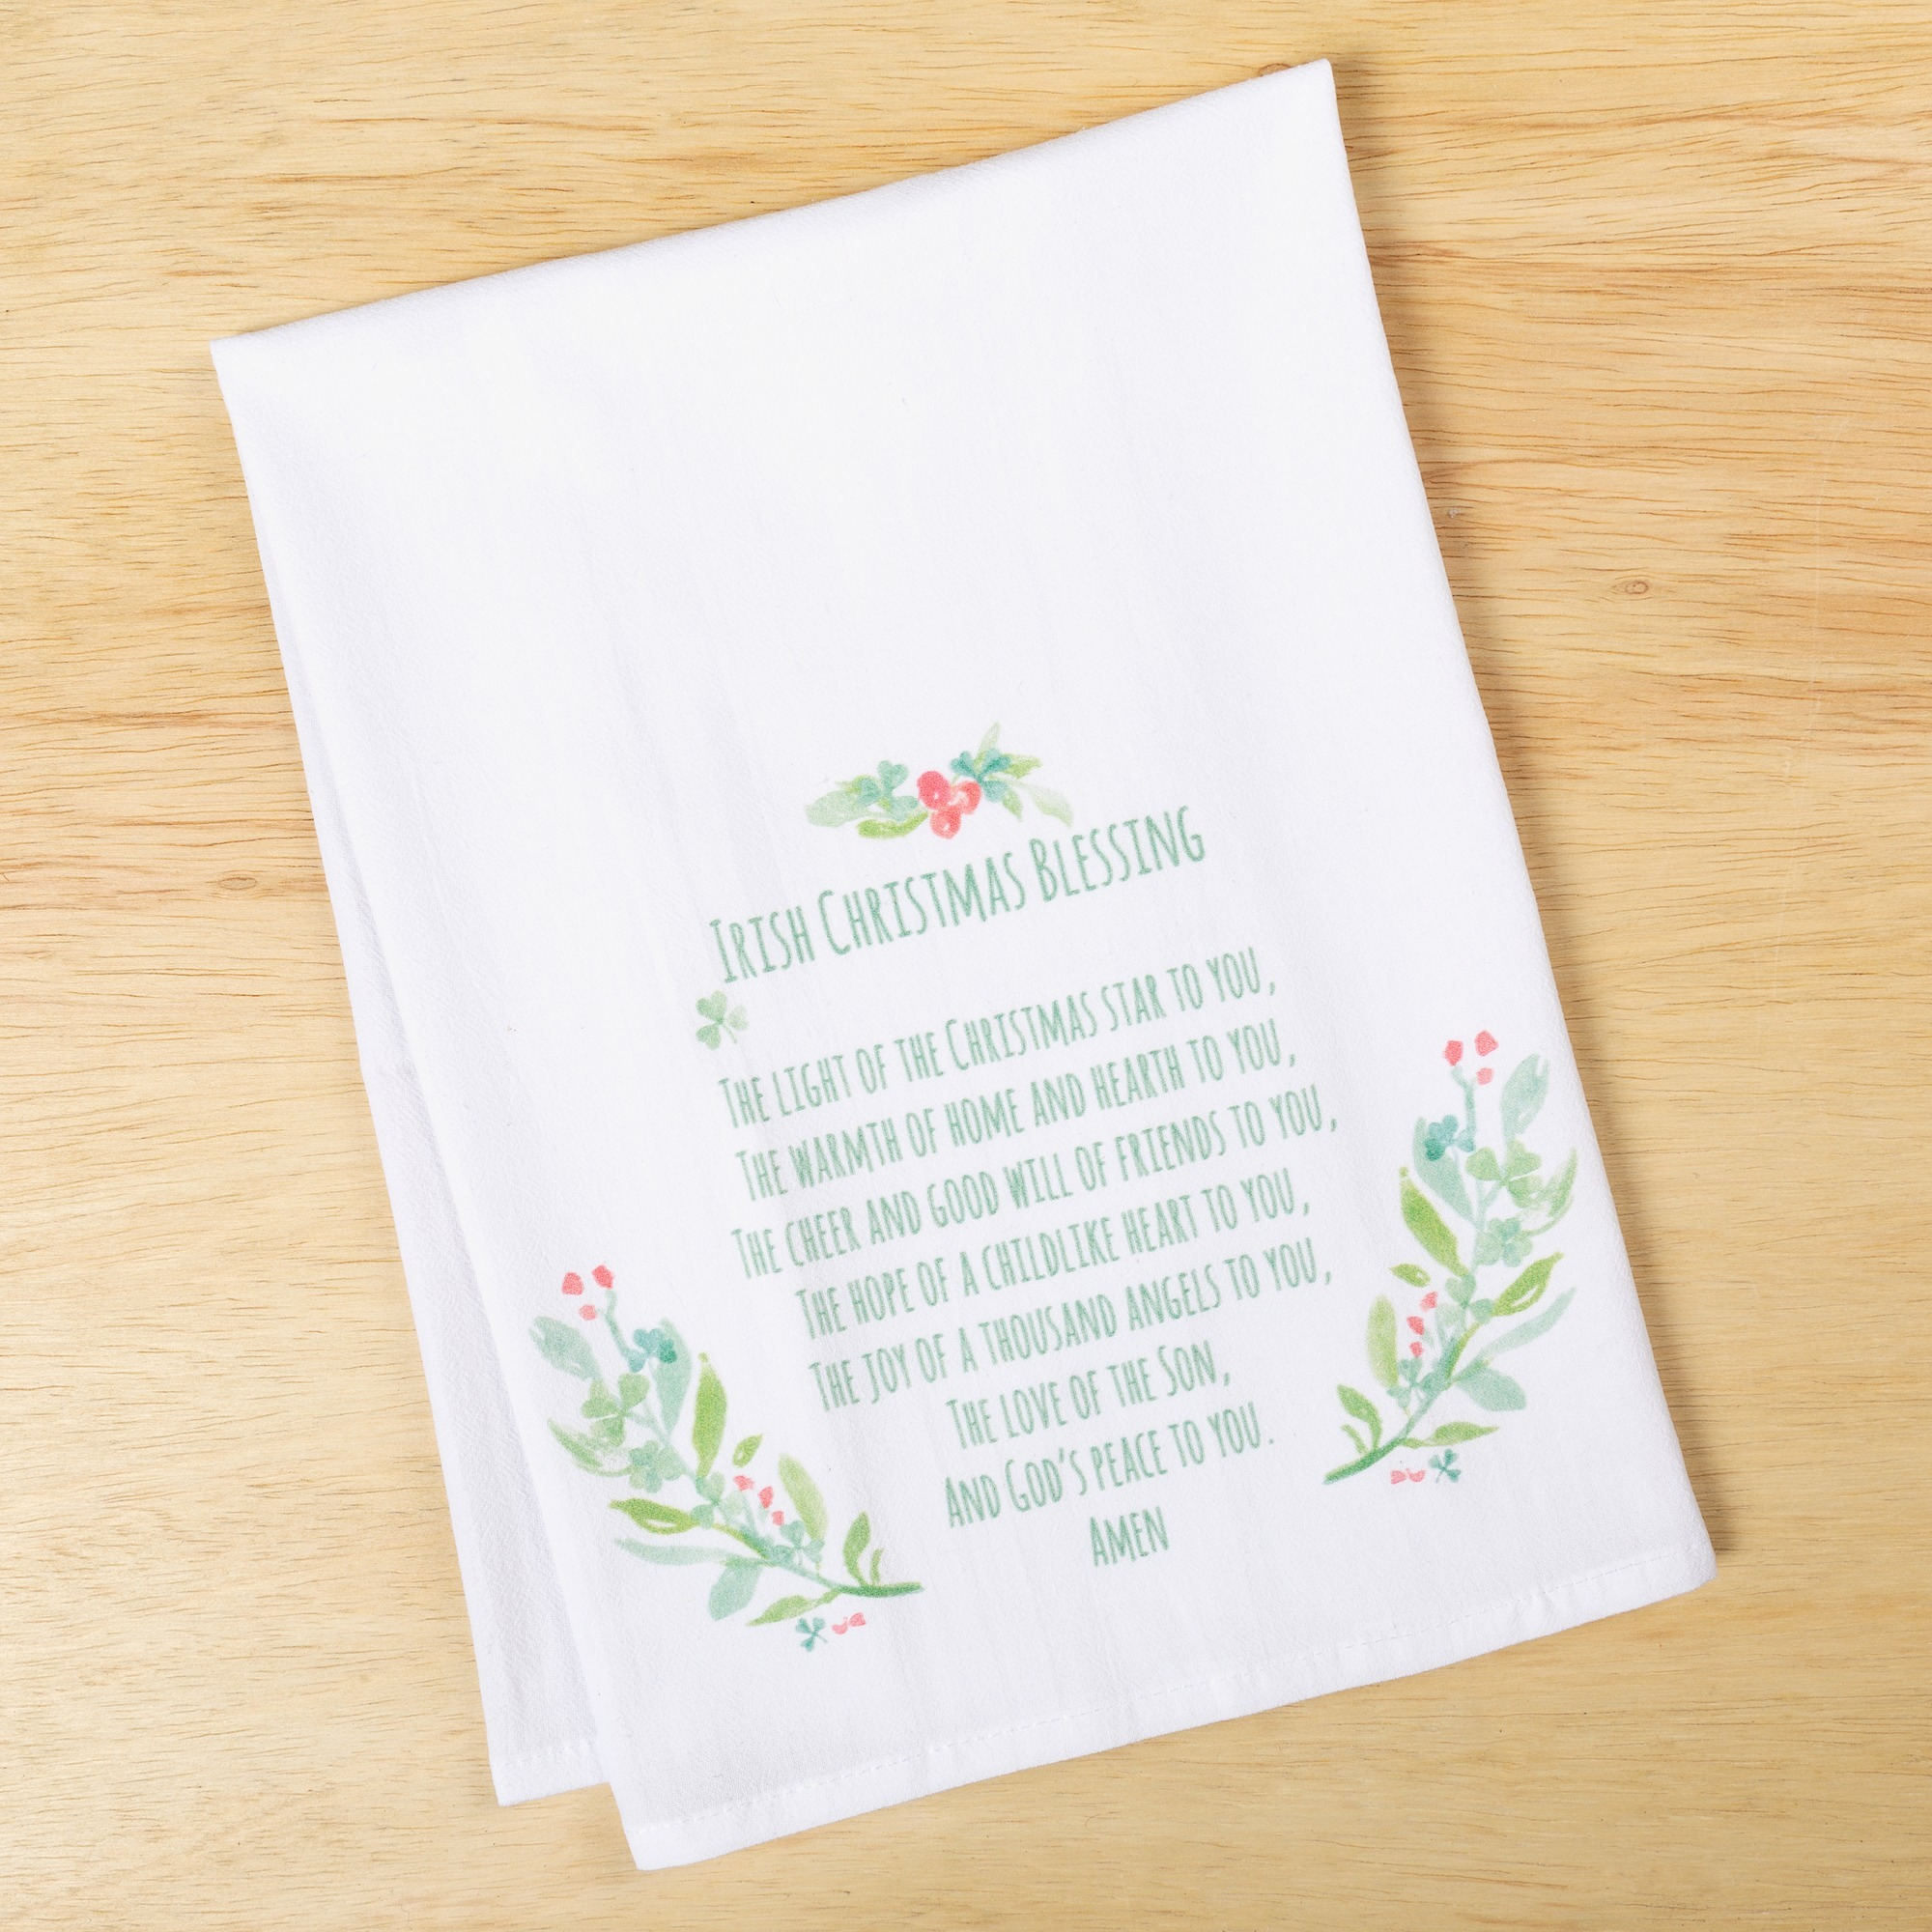 Irish Christmas Blessing Flour Sack Dish Towel | The Catholic Company